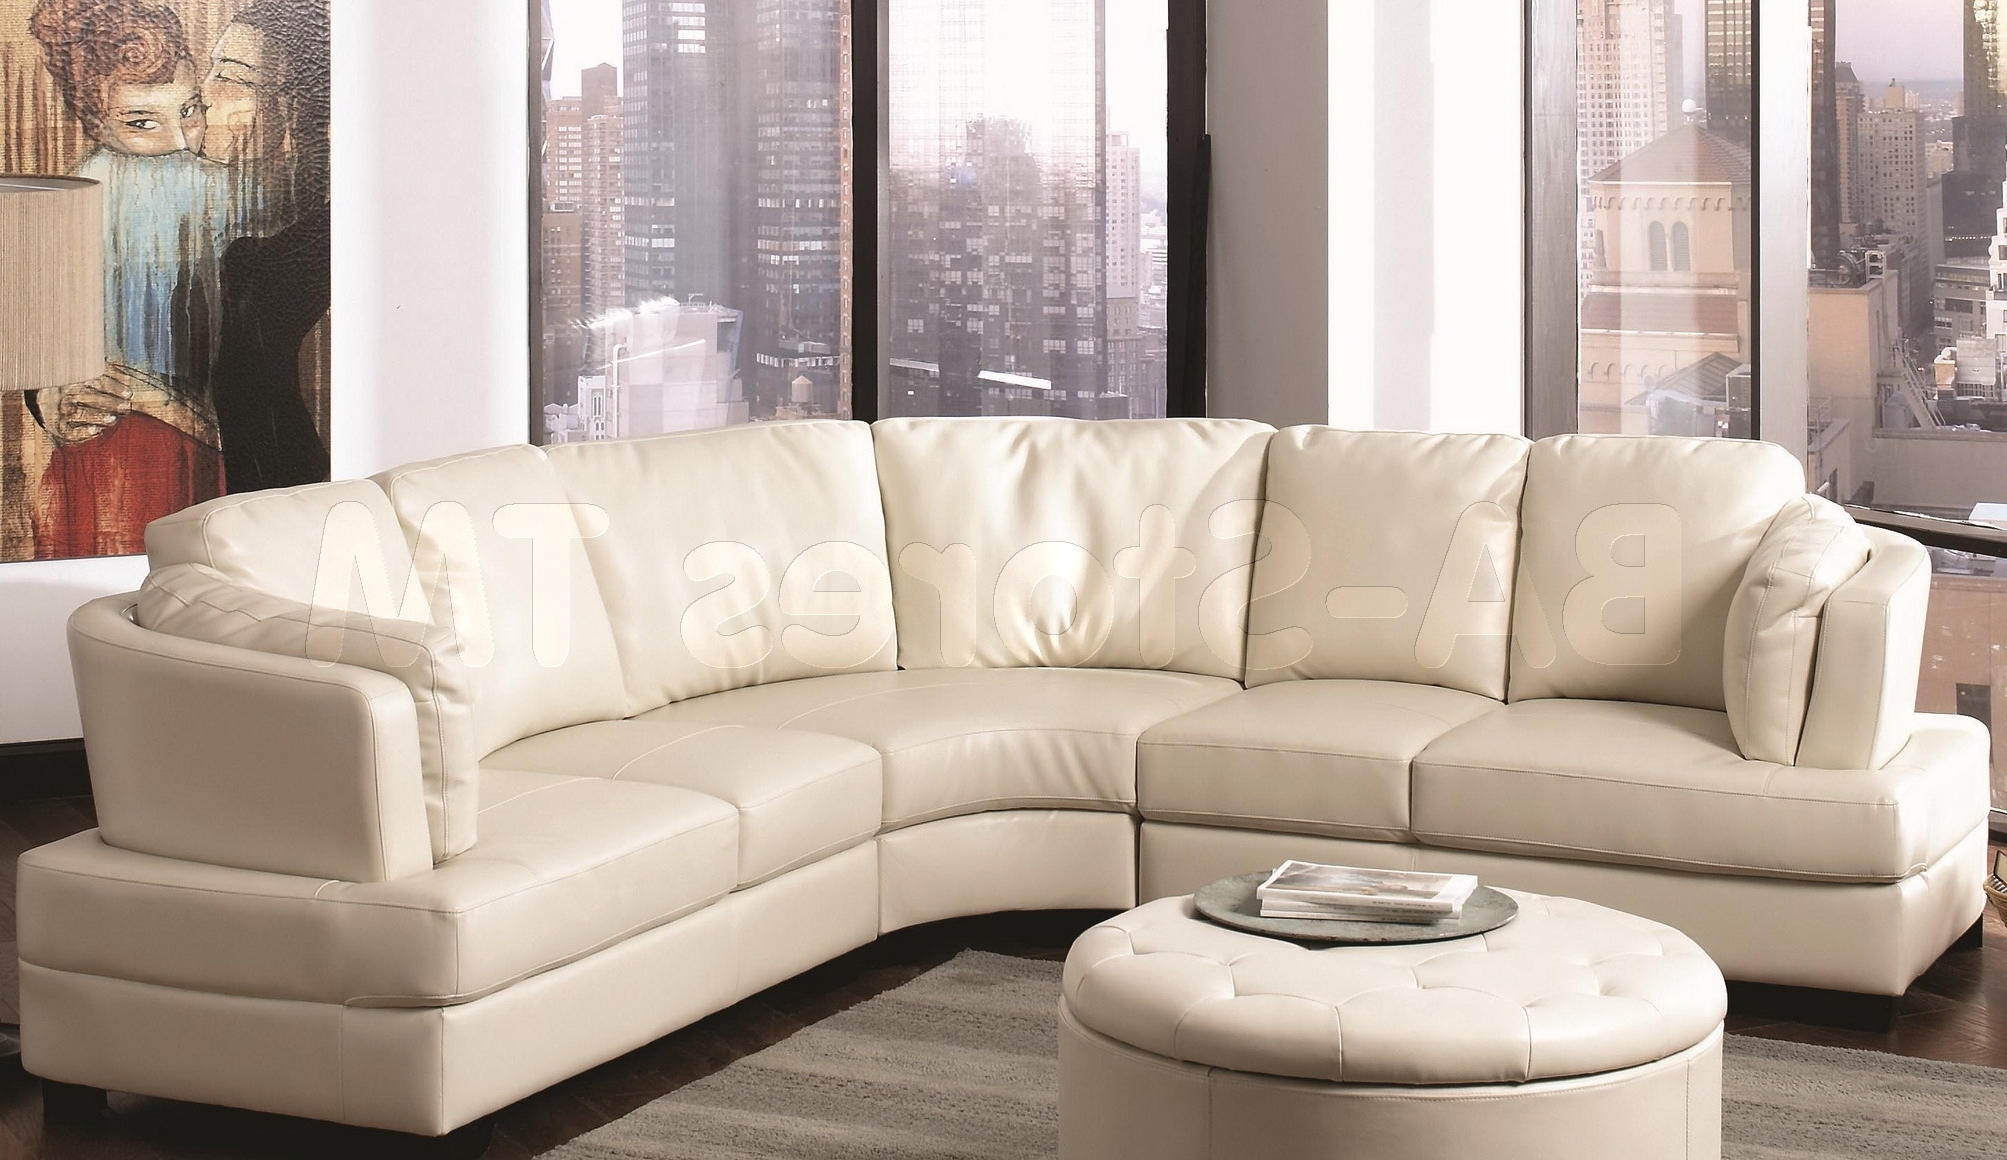 Sectional Sofas For Small Spaces Corner Sofas For Small Rooms Regarding Most Popular Curved Sectional Sofas With Recliner (View 15 of 20)